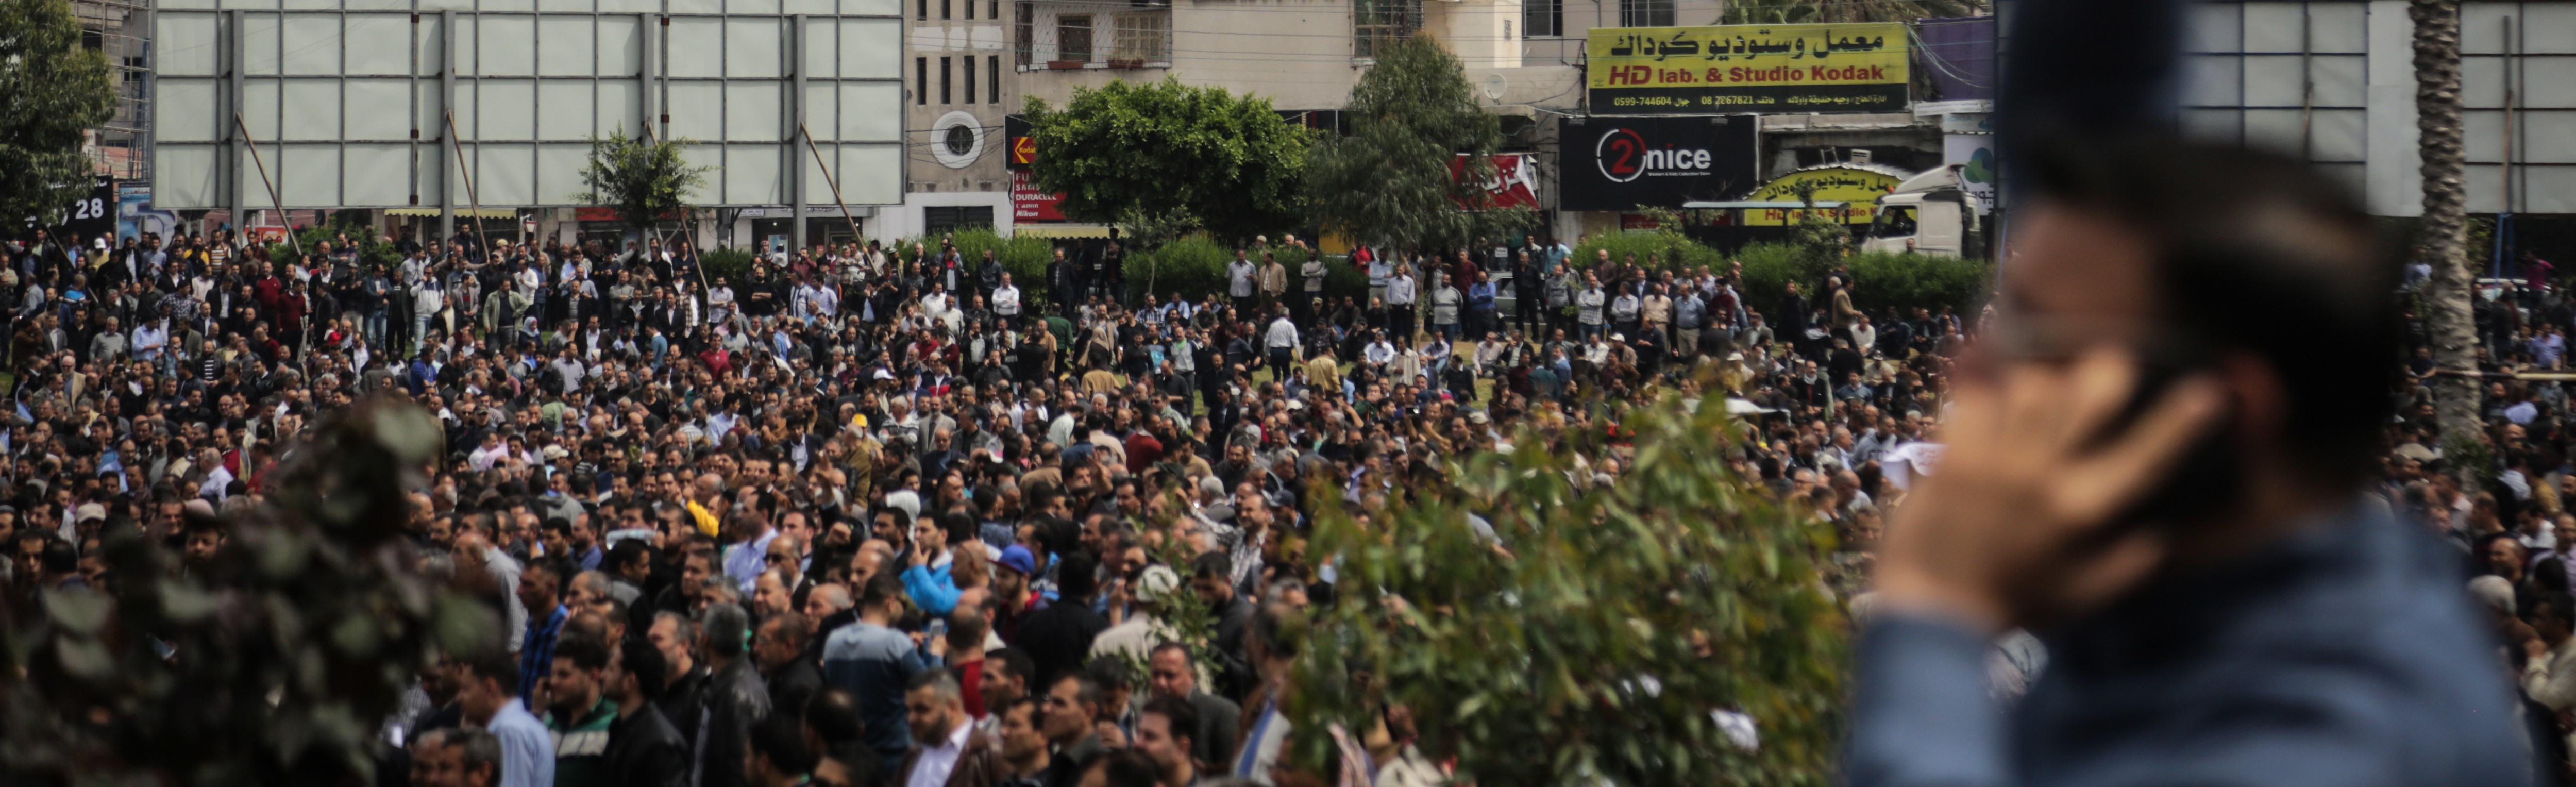 A protest against salary reductions for Palestinian Authority employees, April 2017 (Photo: Getty Images/Nidal Alwaheidi/Pacific Press)